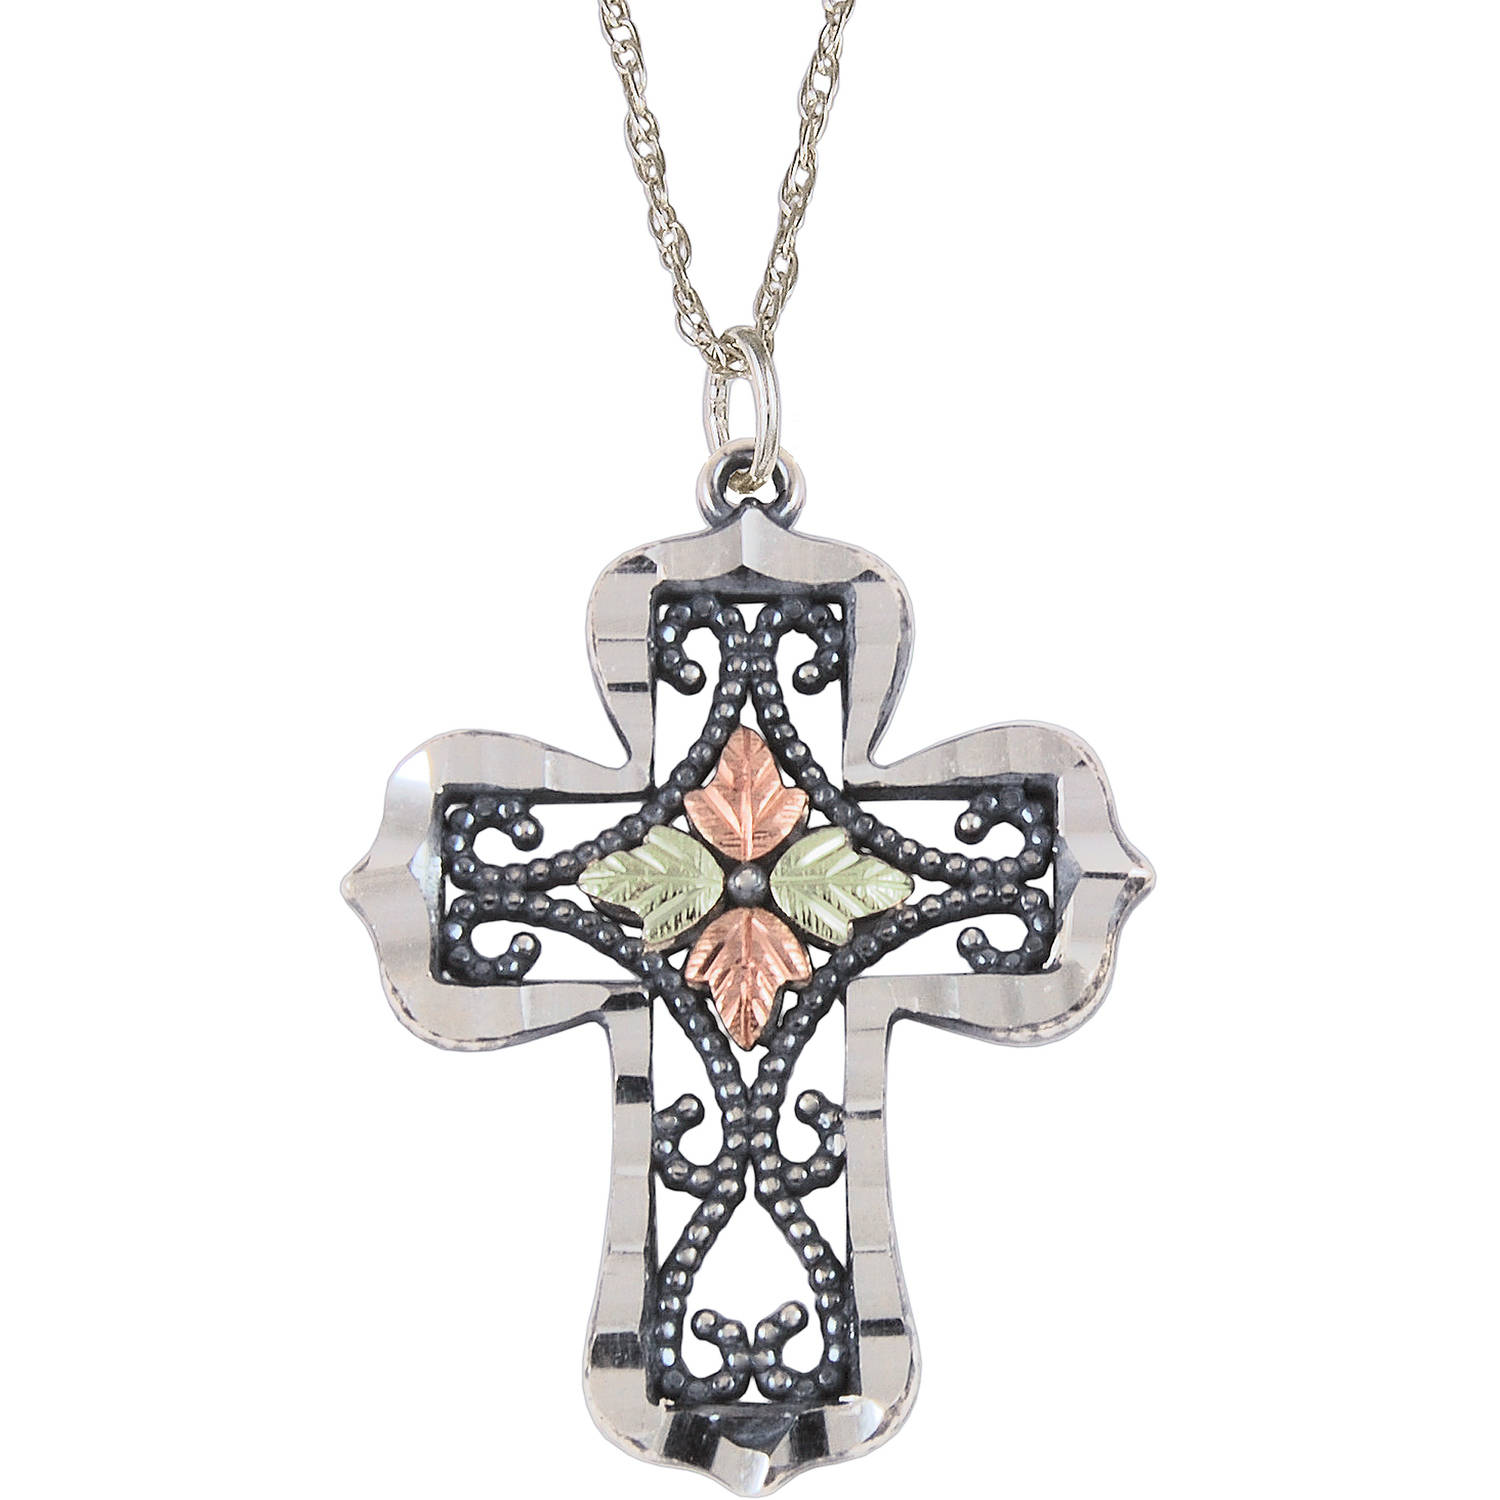 Black Hills Gold Sterling Silver 12kt Gold Leaf Accented Oxidized Cross Pendant, 18""